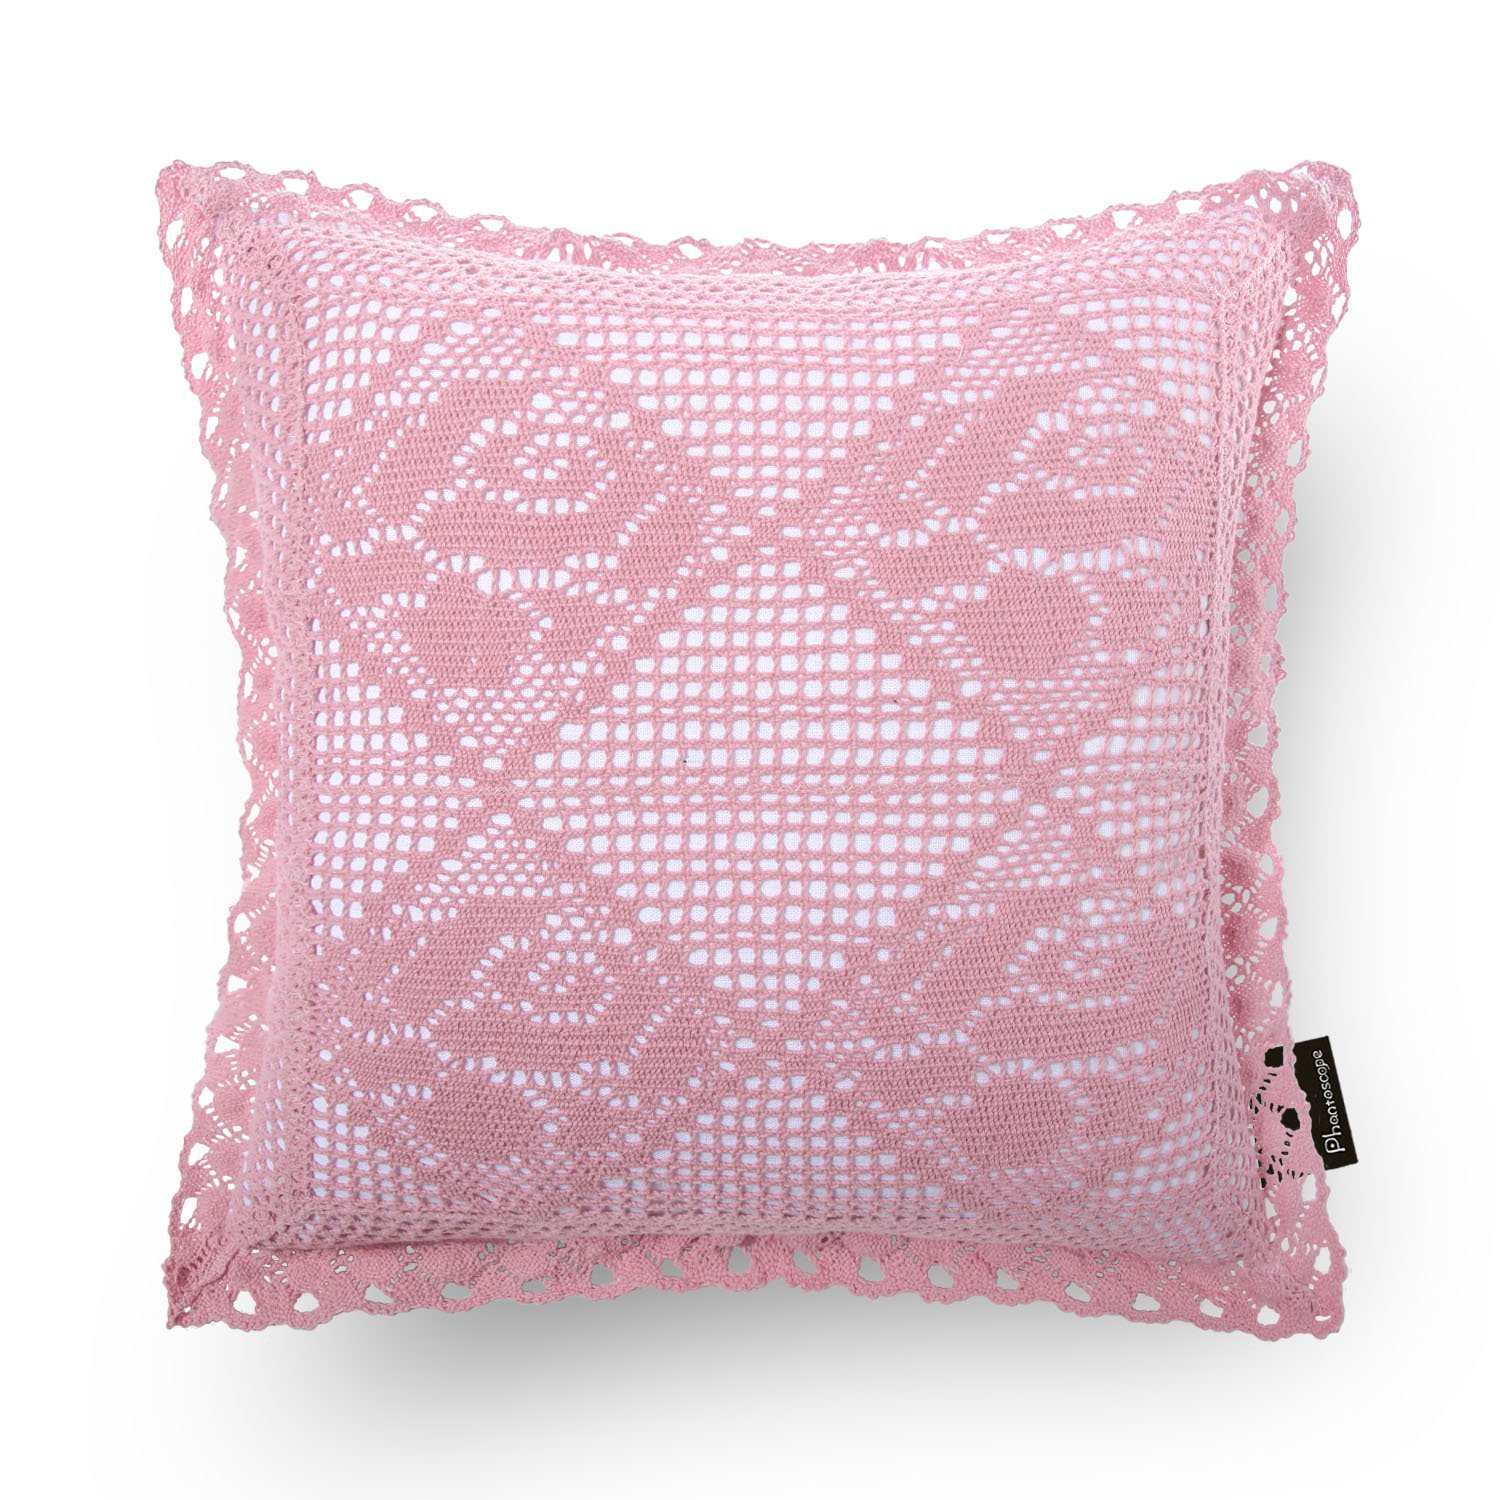 Phantoscope Decorative Crochet Trimmed Throw Pillow Cover (Pink)